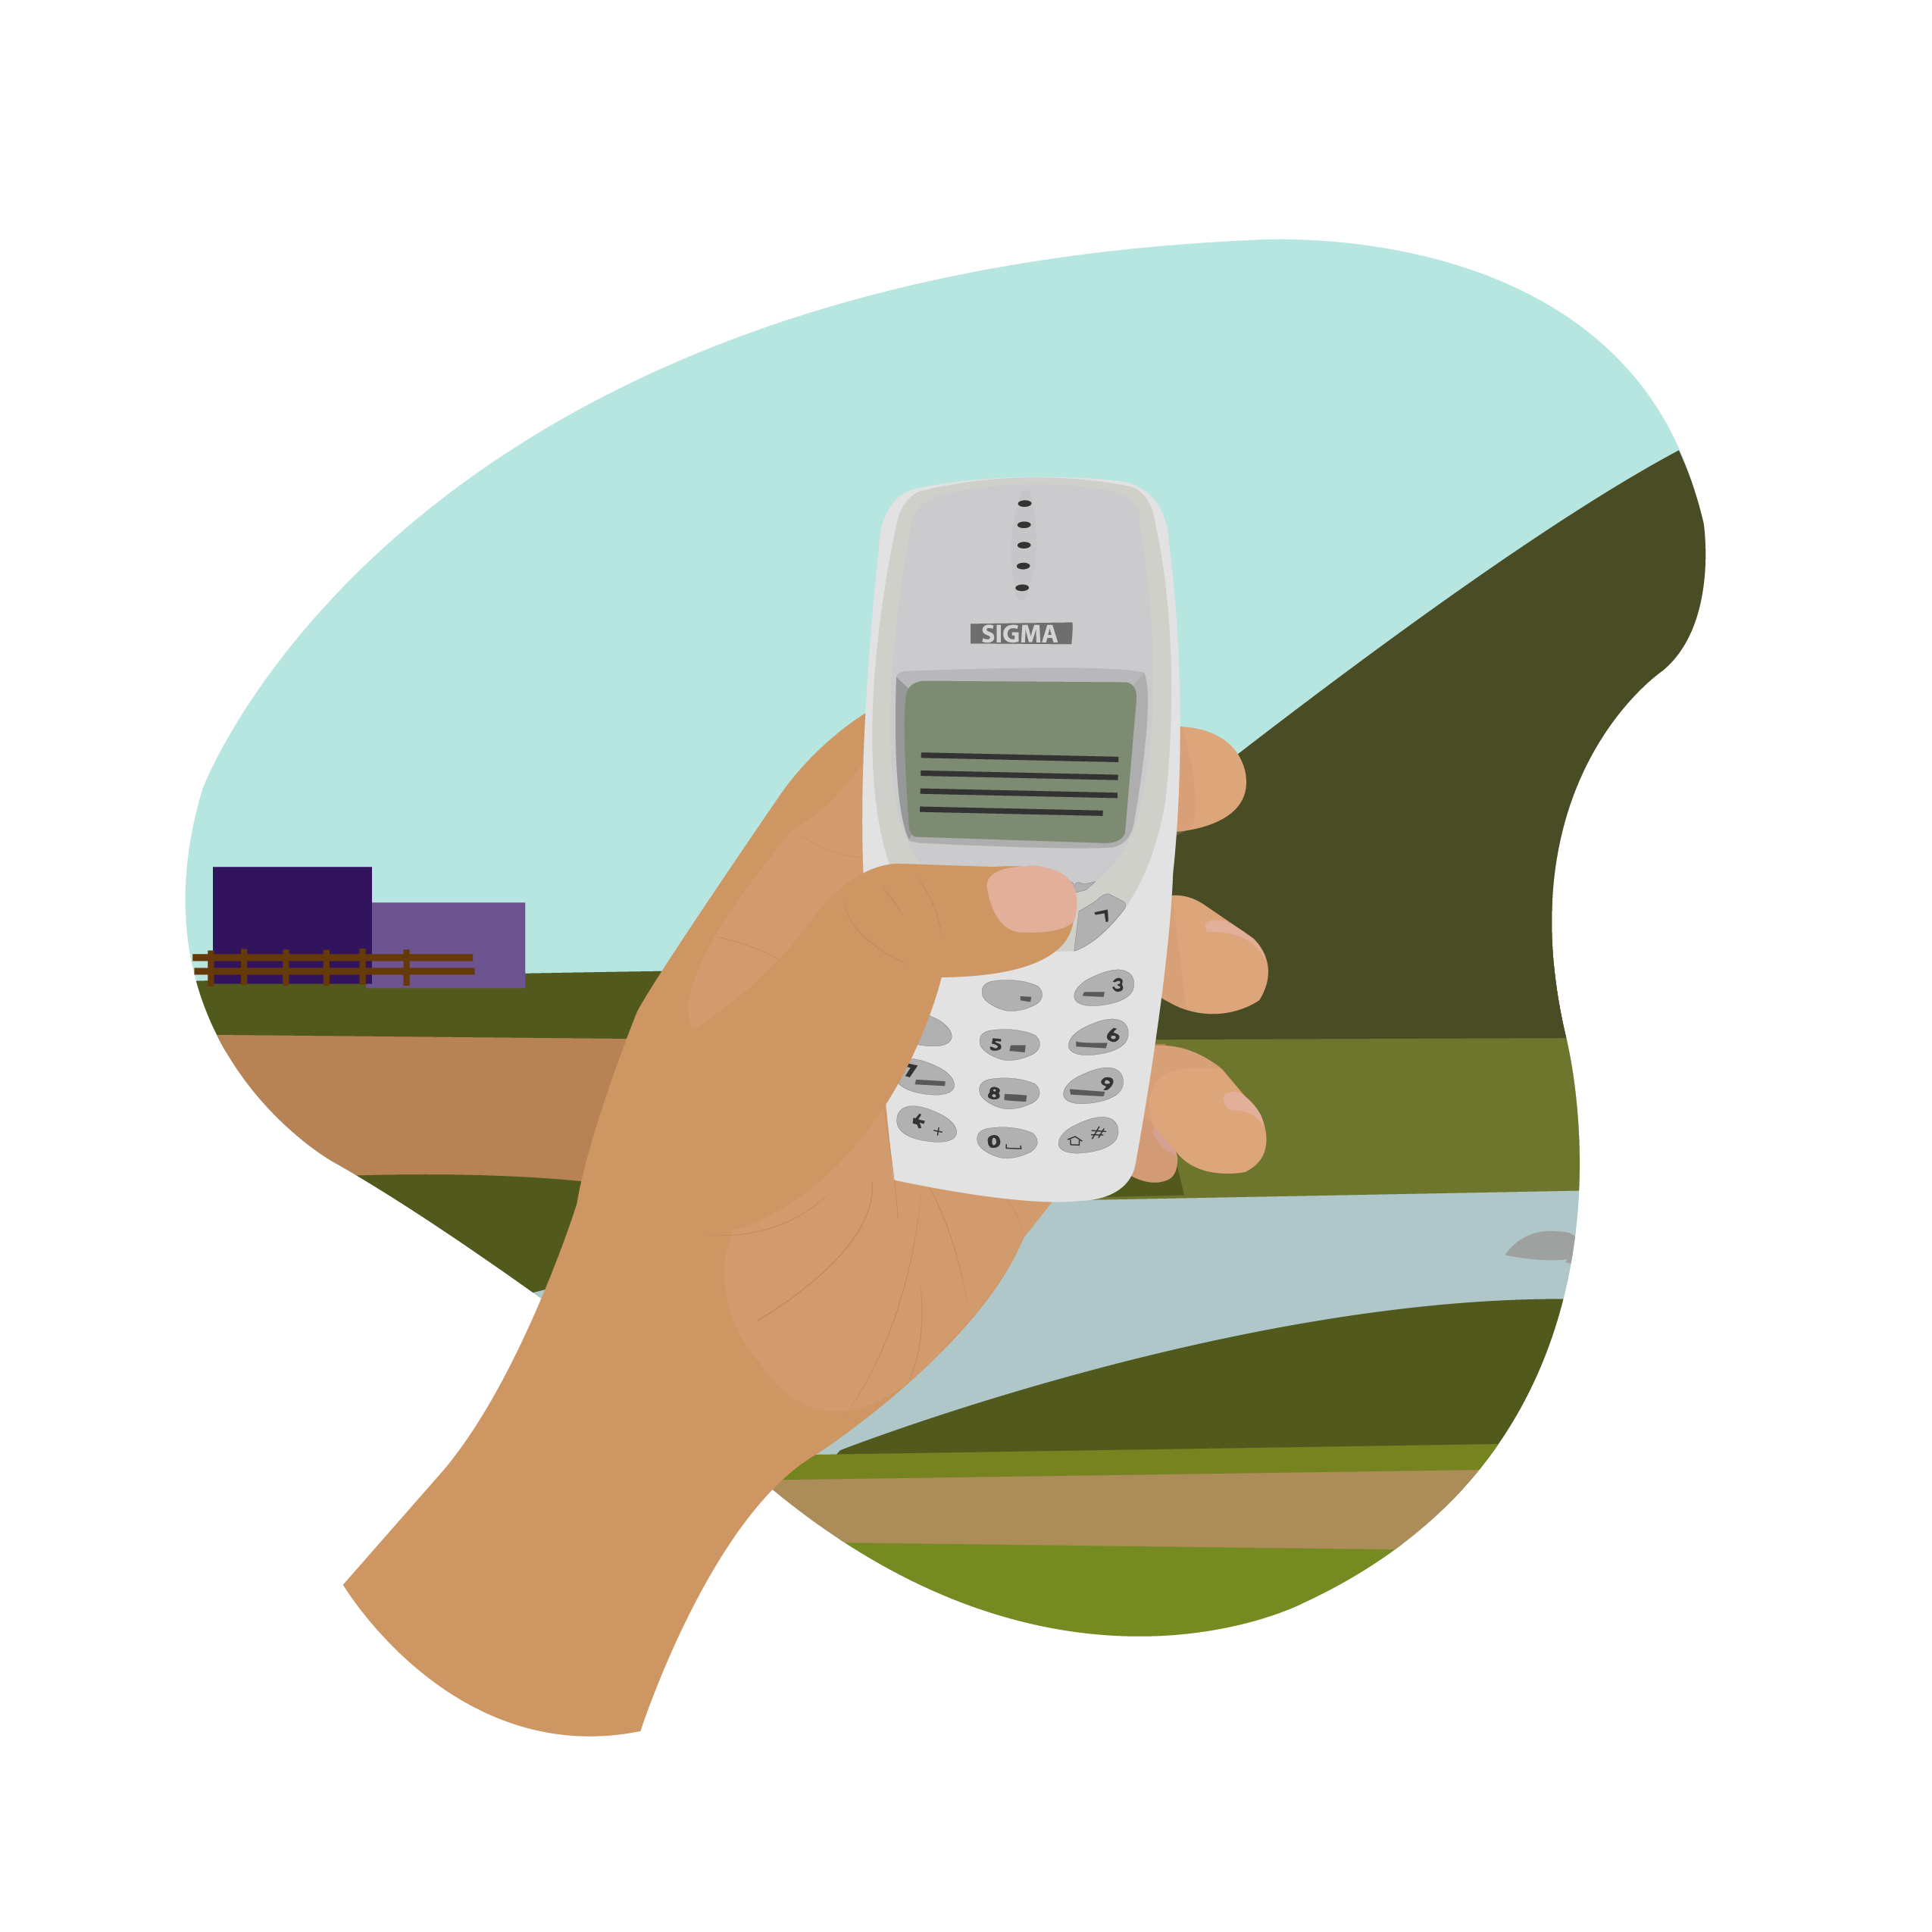 Illustration of a person holding an old phone in a rural setting